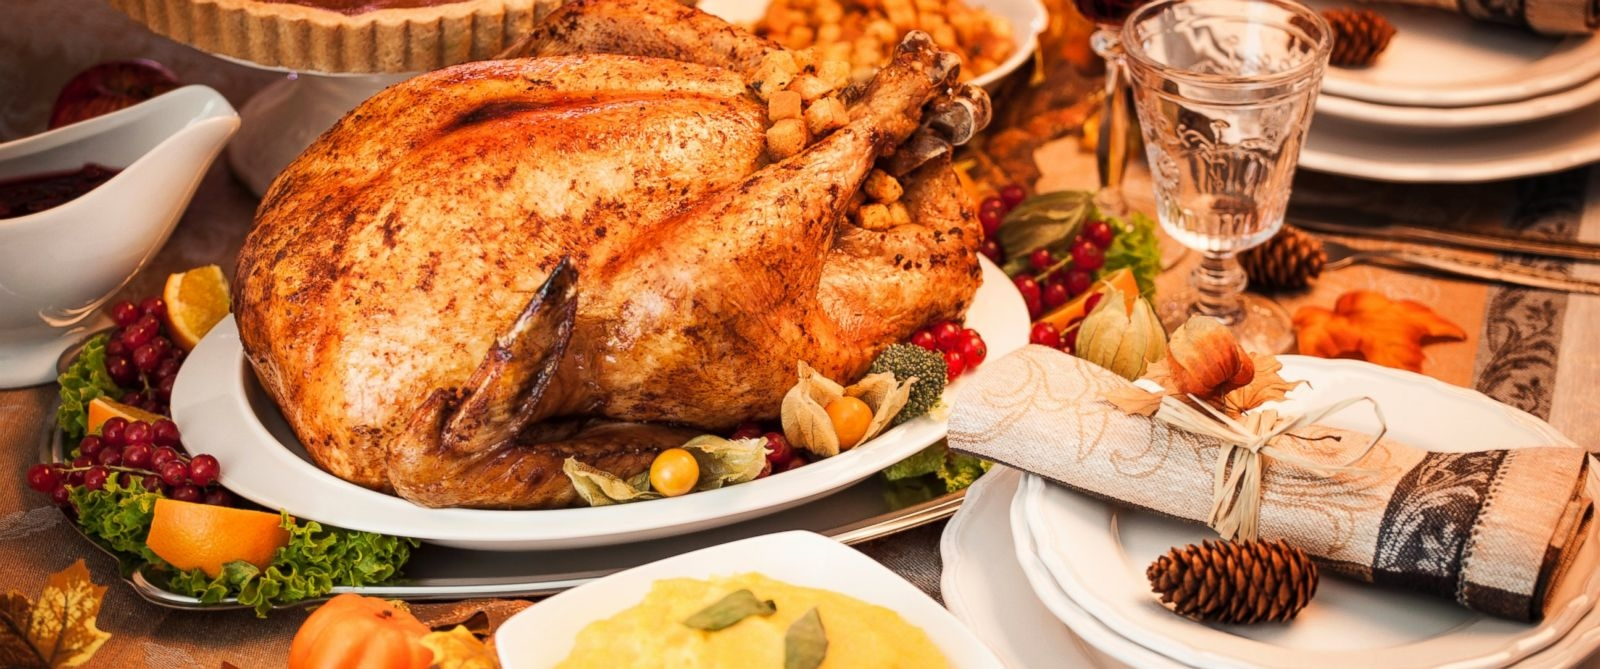 Public Health Issues Holiday Food Safety Tips PNC News First